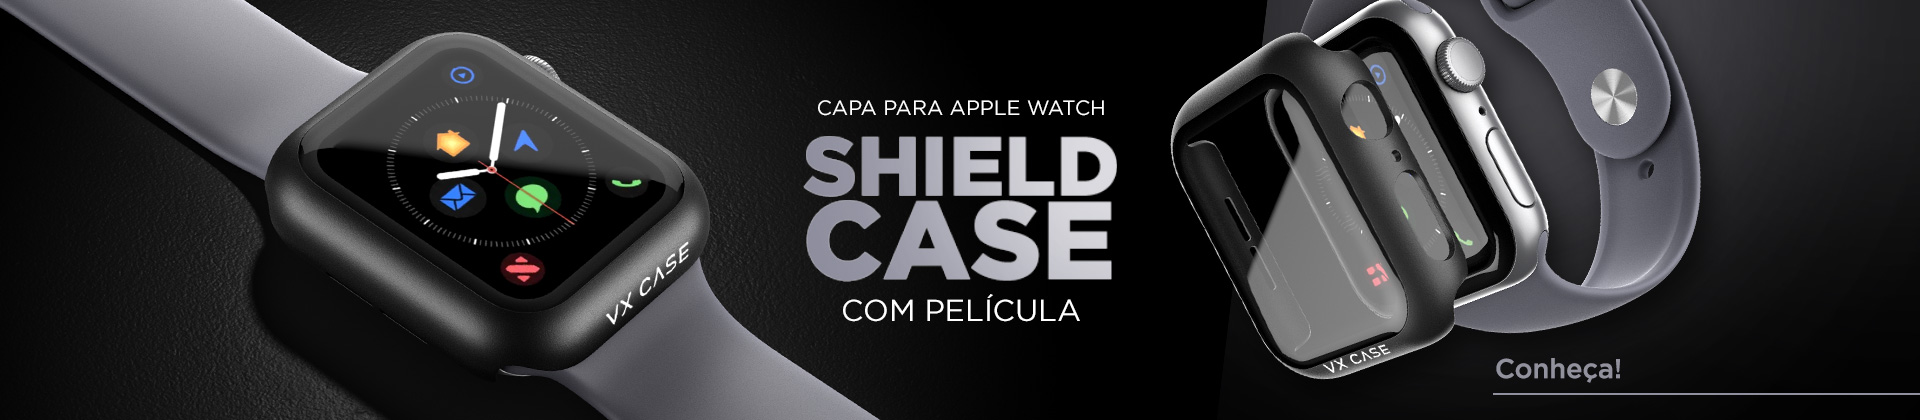 shield-case-desk